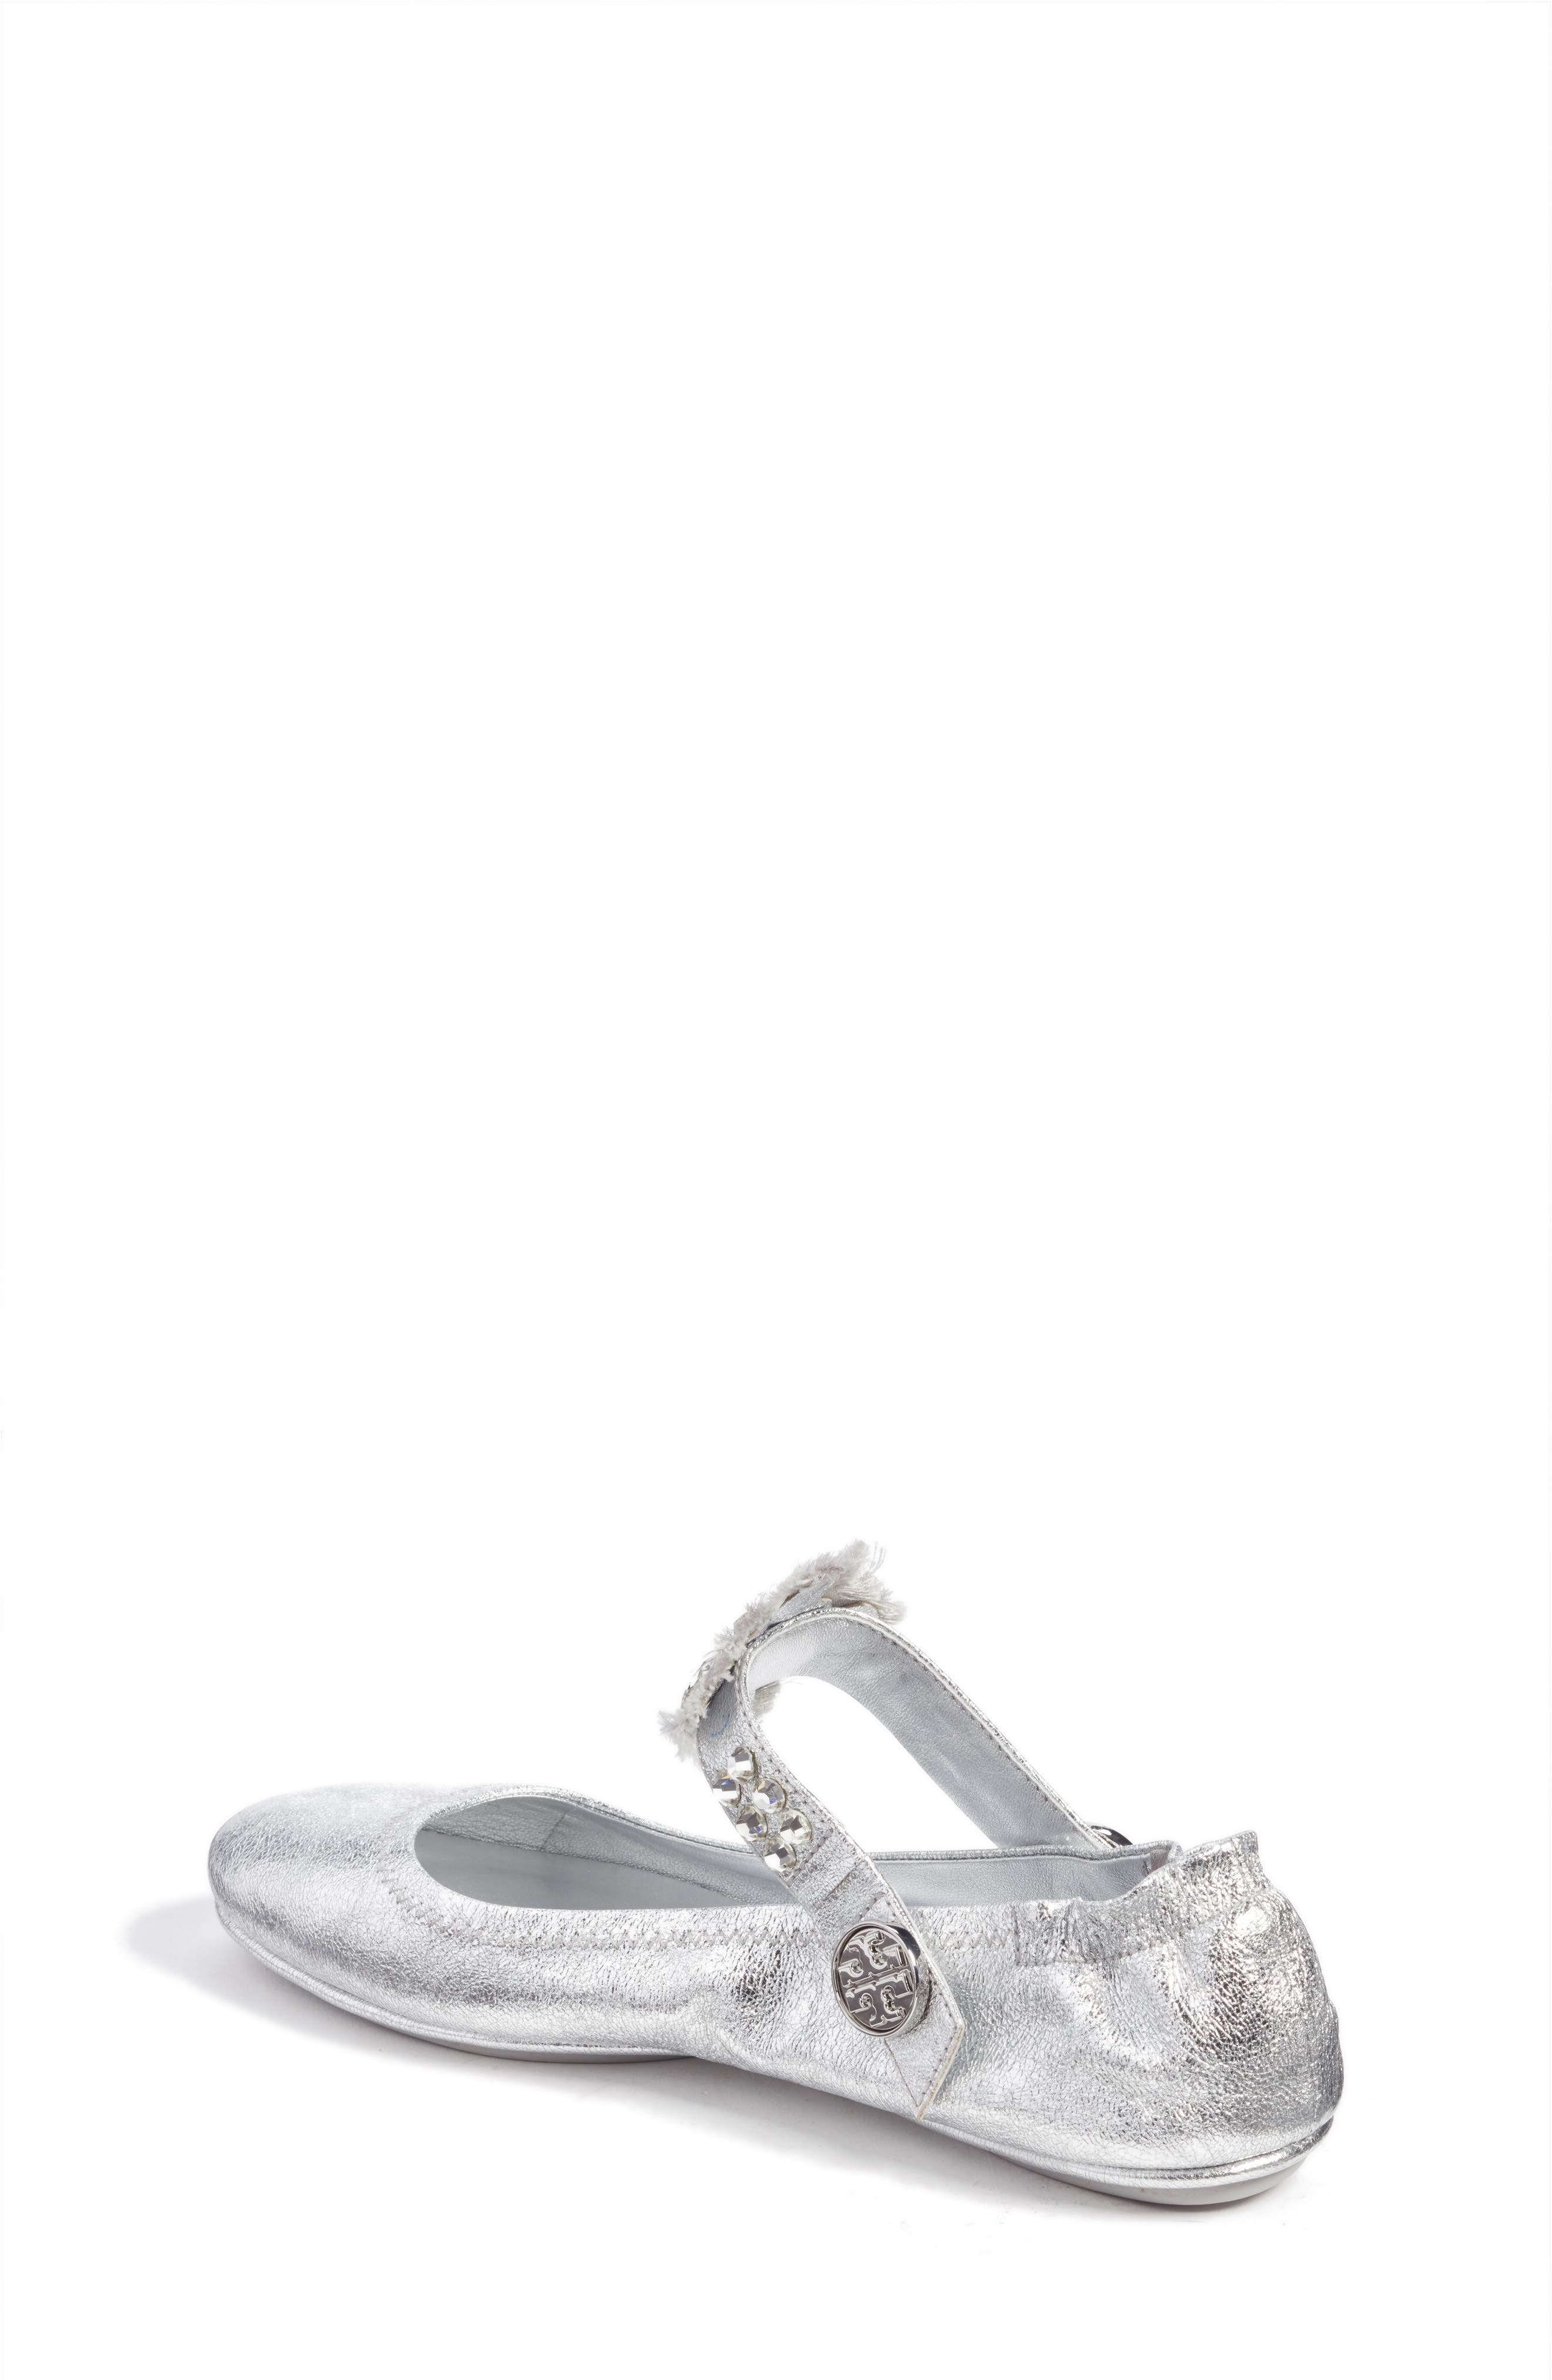 Minnie Embellished Convertible Strap Ballet Flat,                             Alternate thumbnail 8, color,